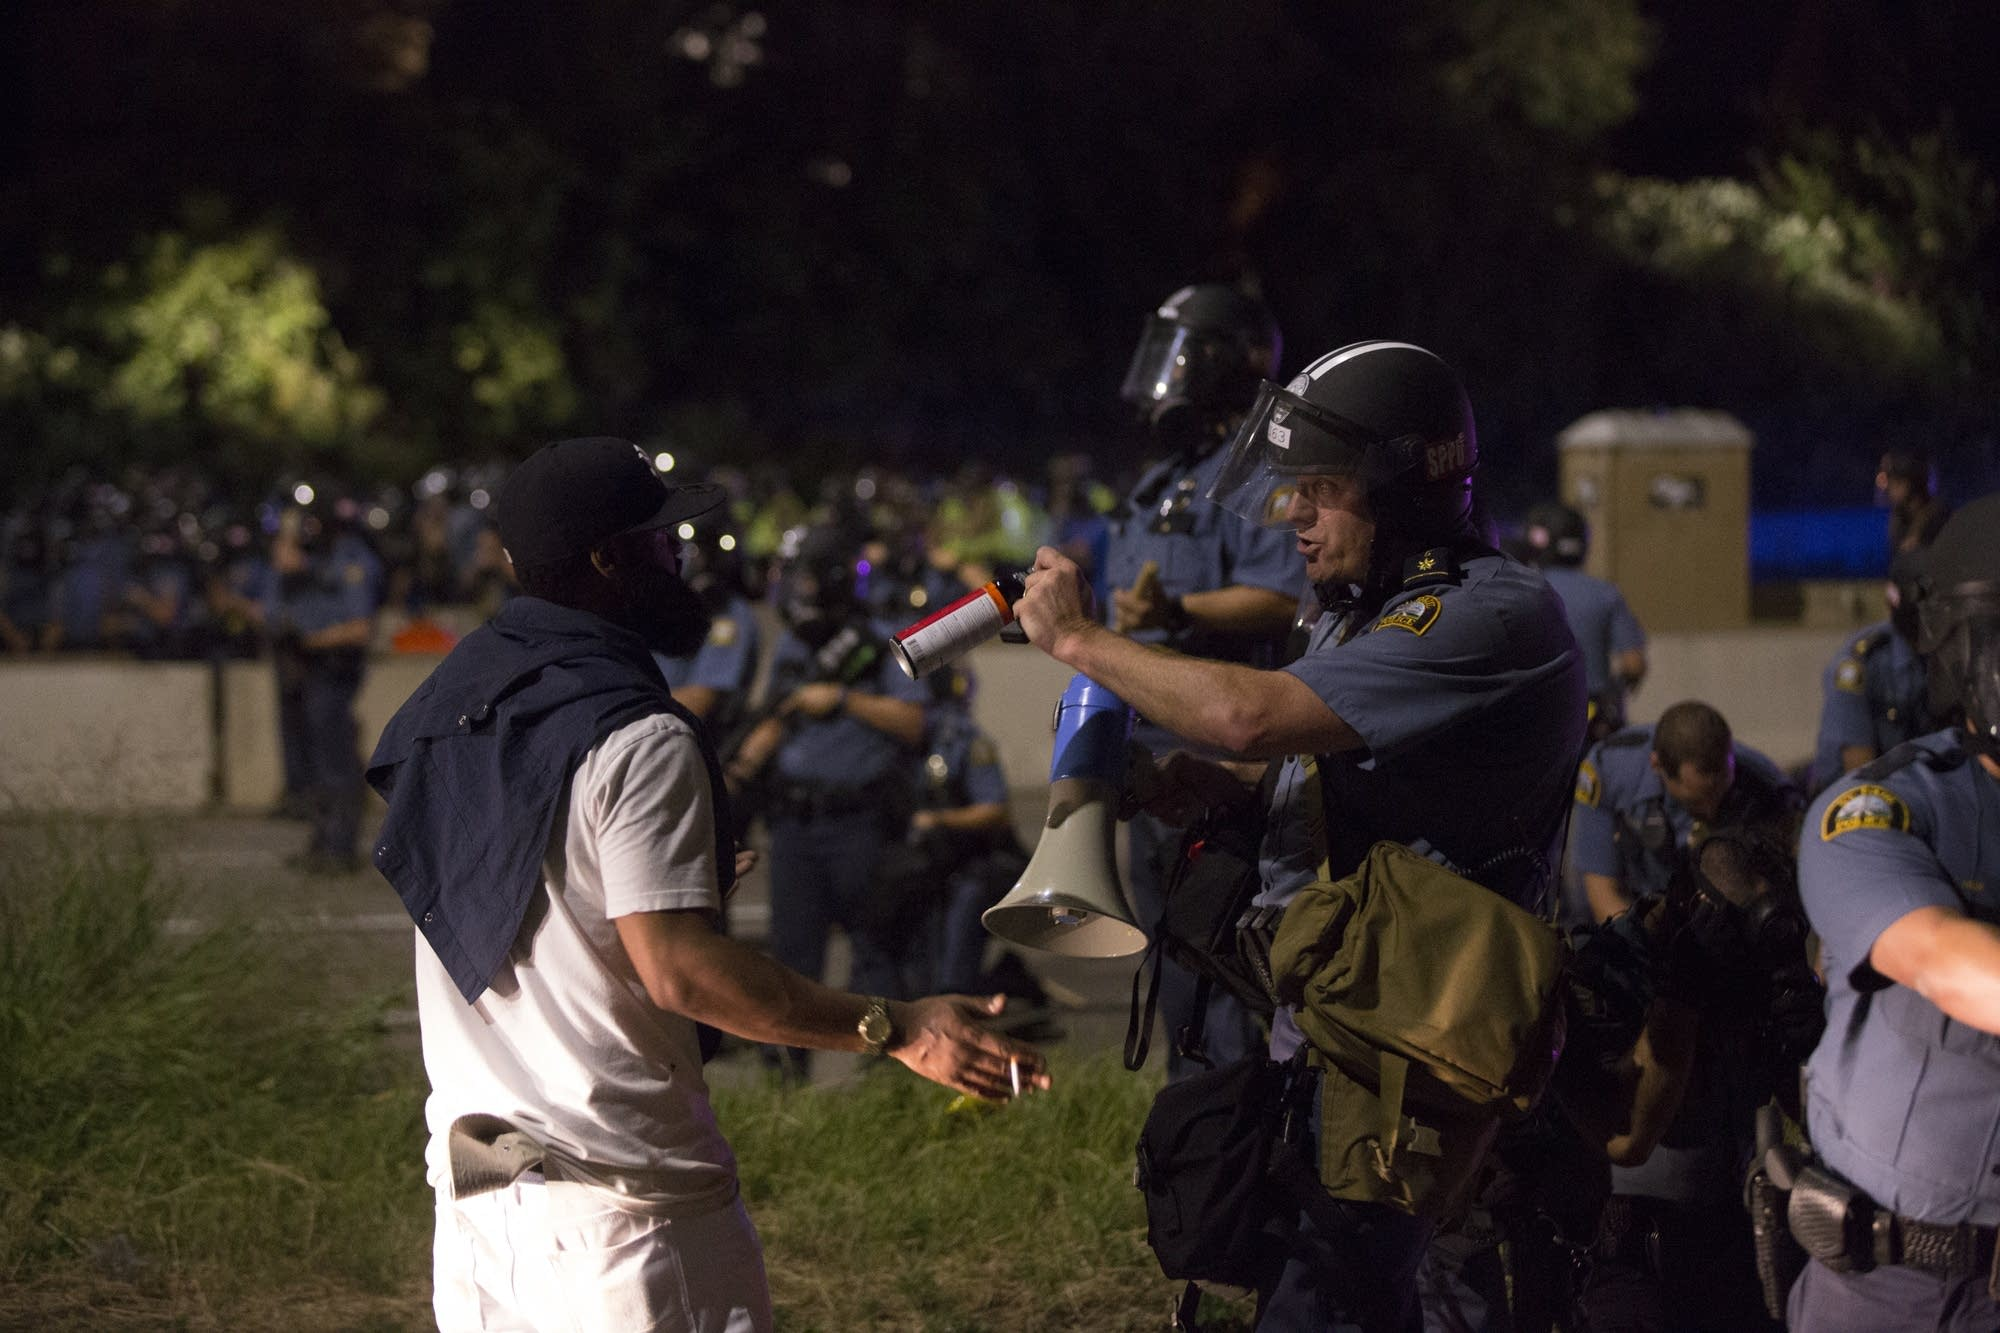 A protester faces off with police officer.